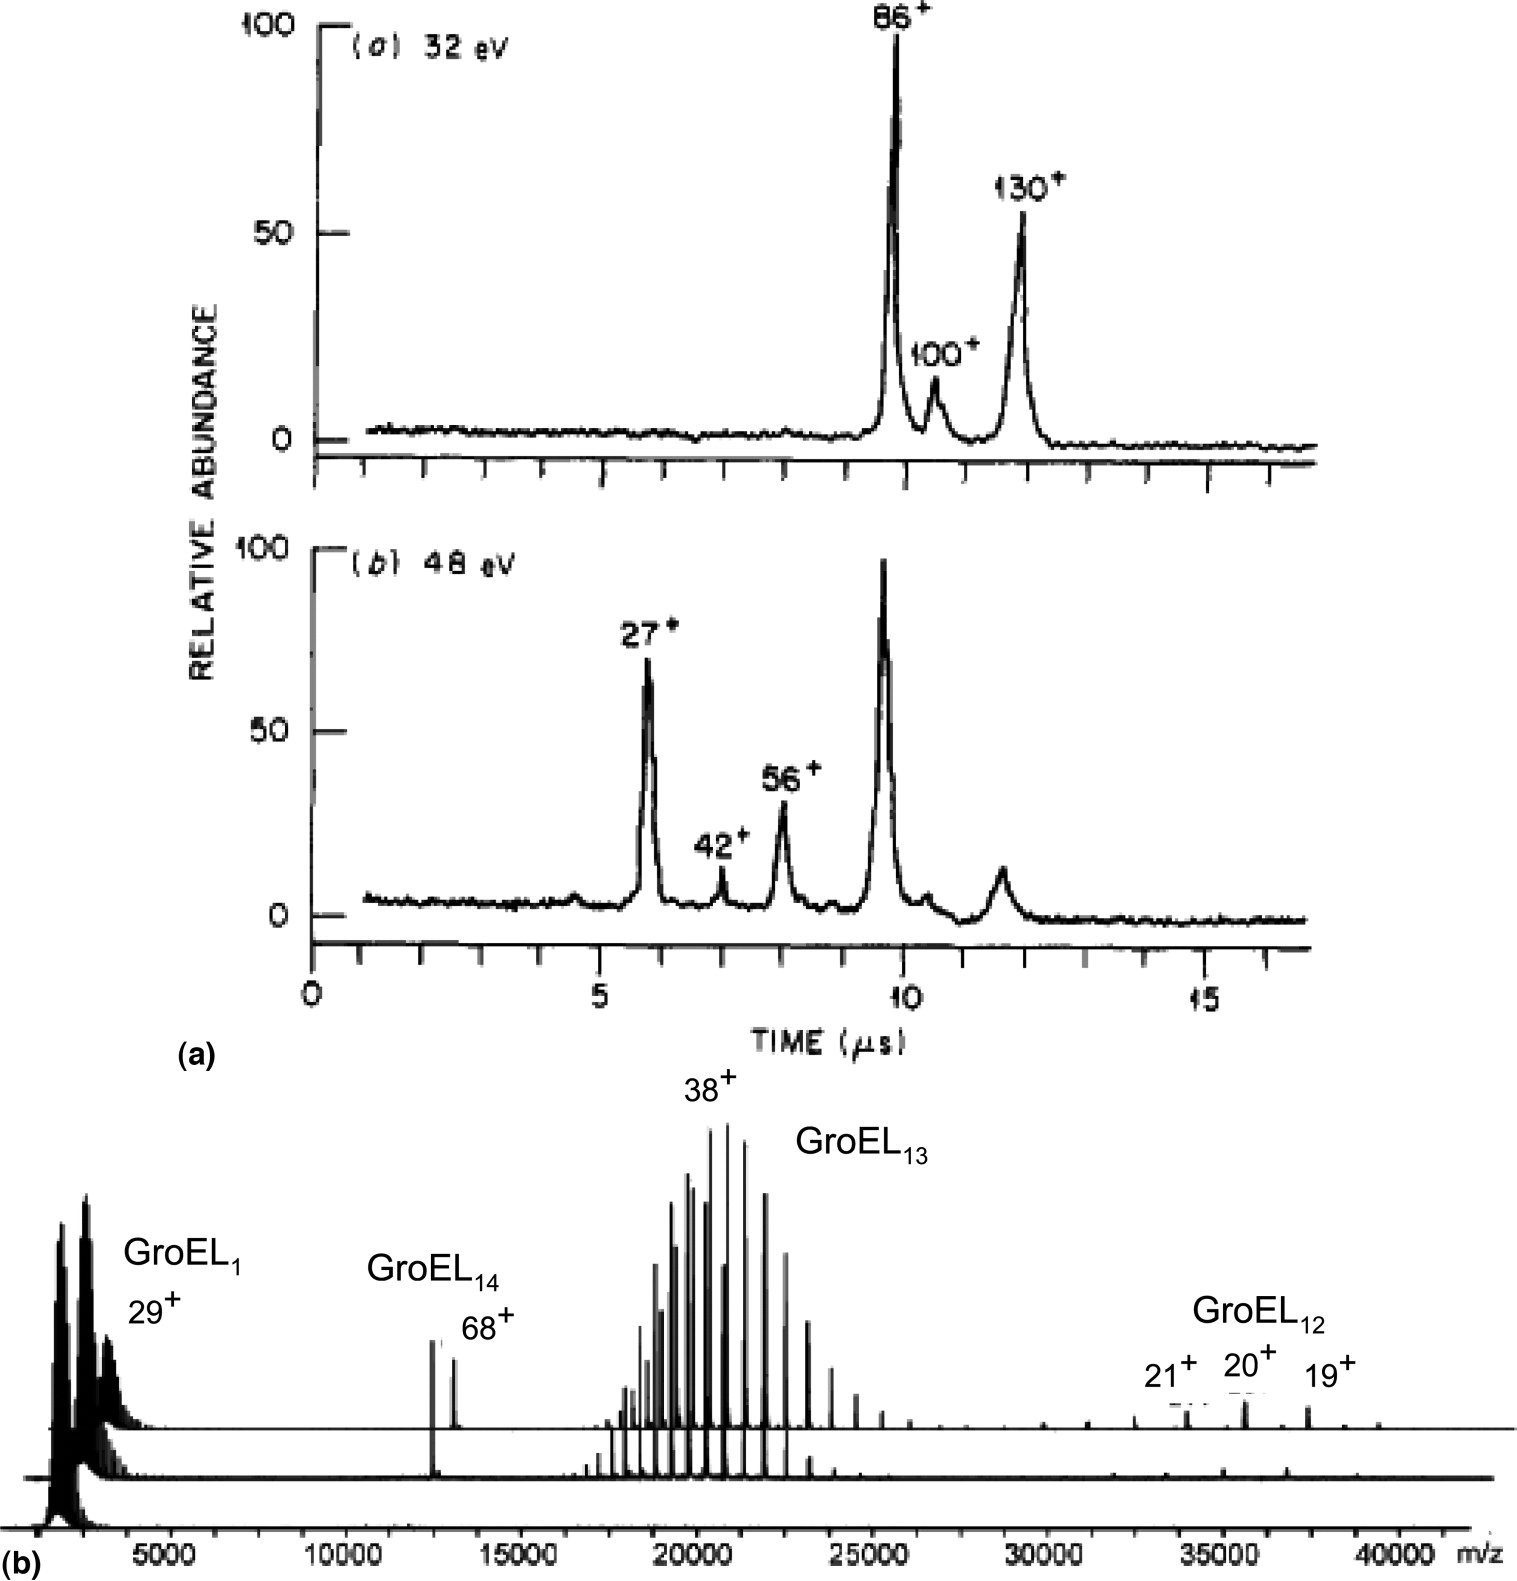 Hybrid Mass Spectrometers For Tandem Spectrometry Sciencedirect Drive Circuit Using An Optocoupled Pulse Amplifier Google Patents Download Full Size Image